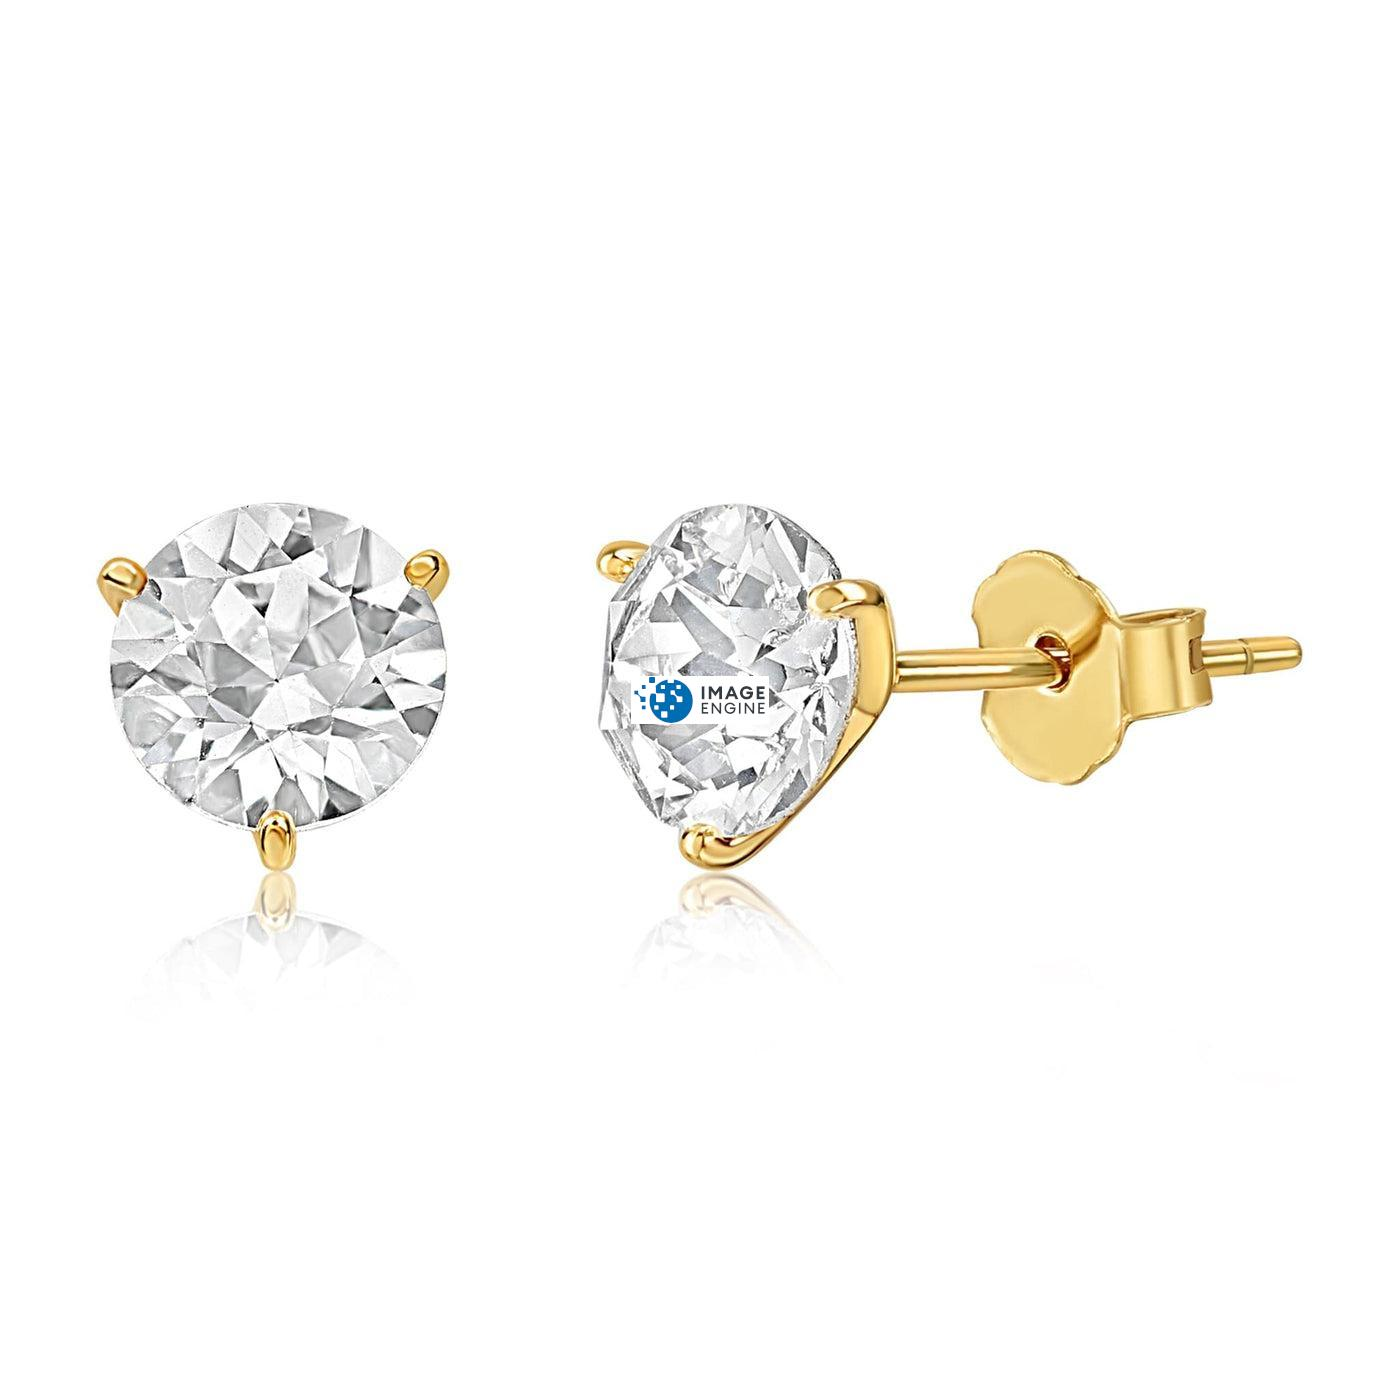 Swarovski Stud Earrings - Facing to the Left Down - 18K Yellow Gold Vermeil